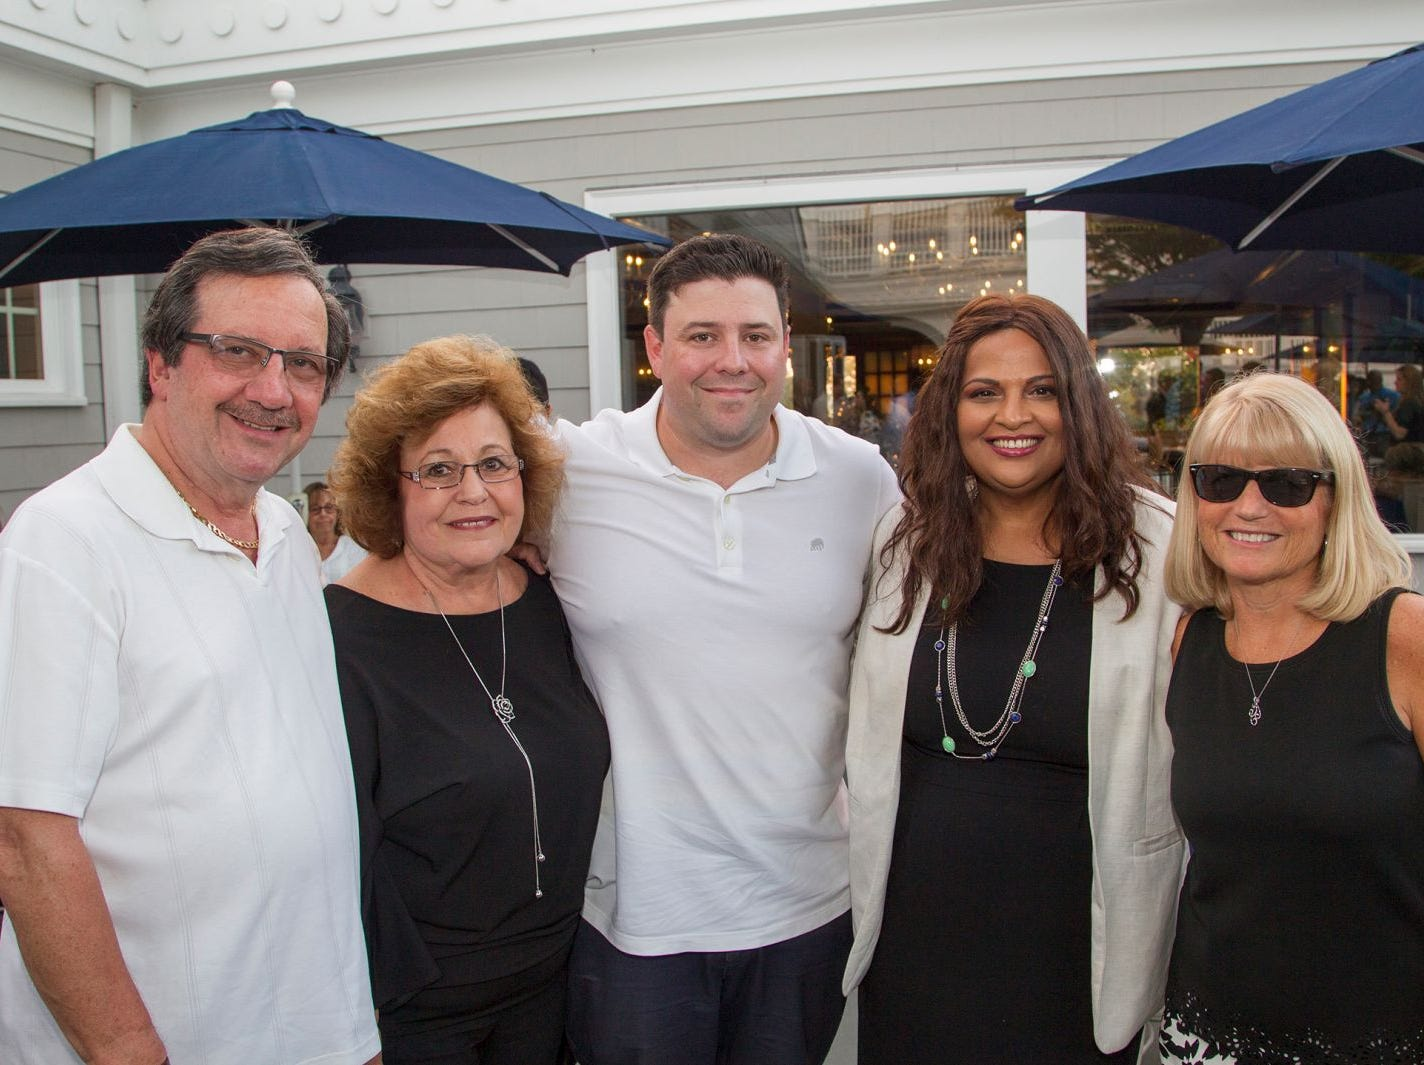 Bruce and Evelyn Butzel, Eric and Elma Butzel, Diane Lento. Institute for Educational Achievement held its 23rd annual Golf Classic at Hackensack Golf Club in Oradell. 10/01/2018